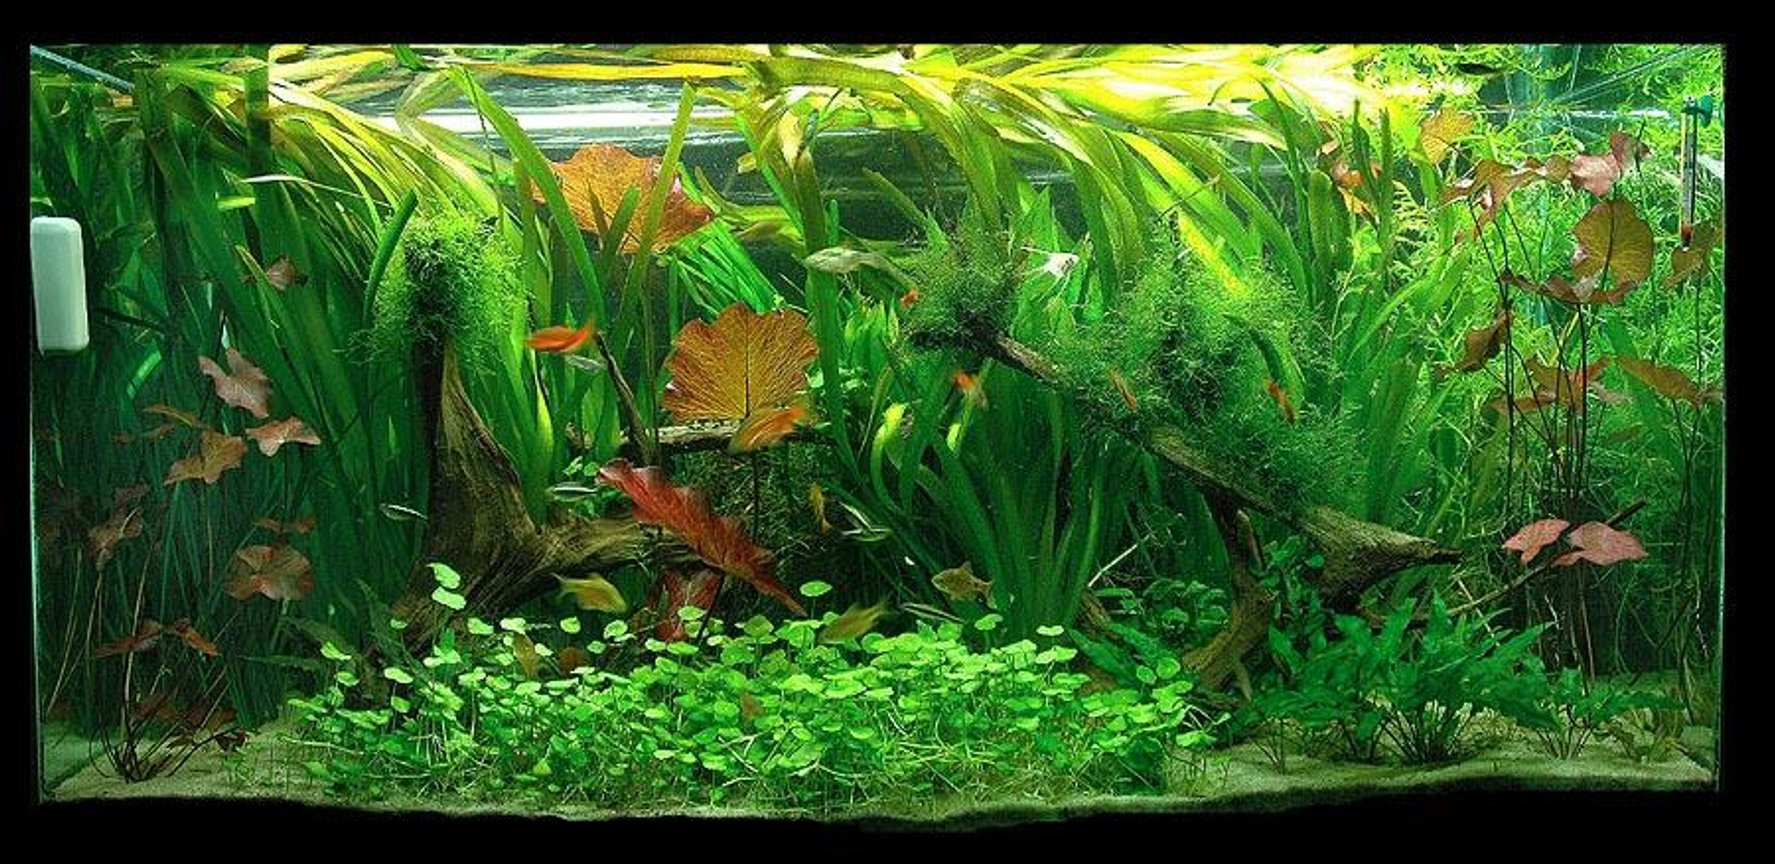 90 gallons planted tank (mostly live plants and fish) - 90g planted tank. CO2 and fertalizers, 2.4 wpg. Running 1 year.